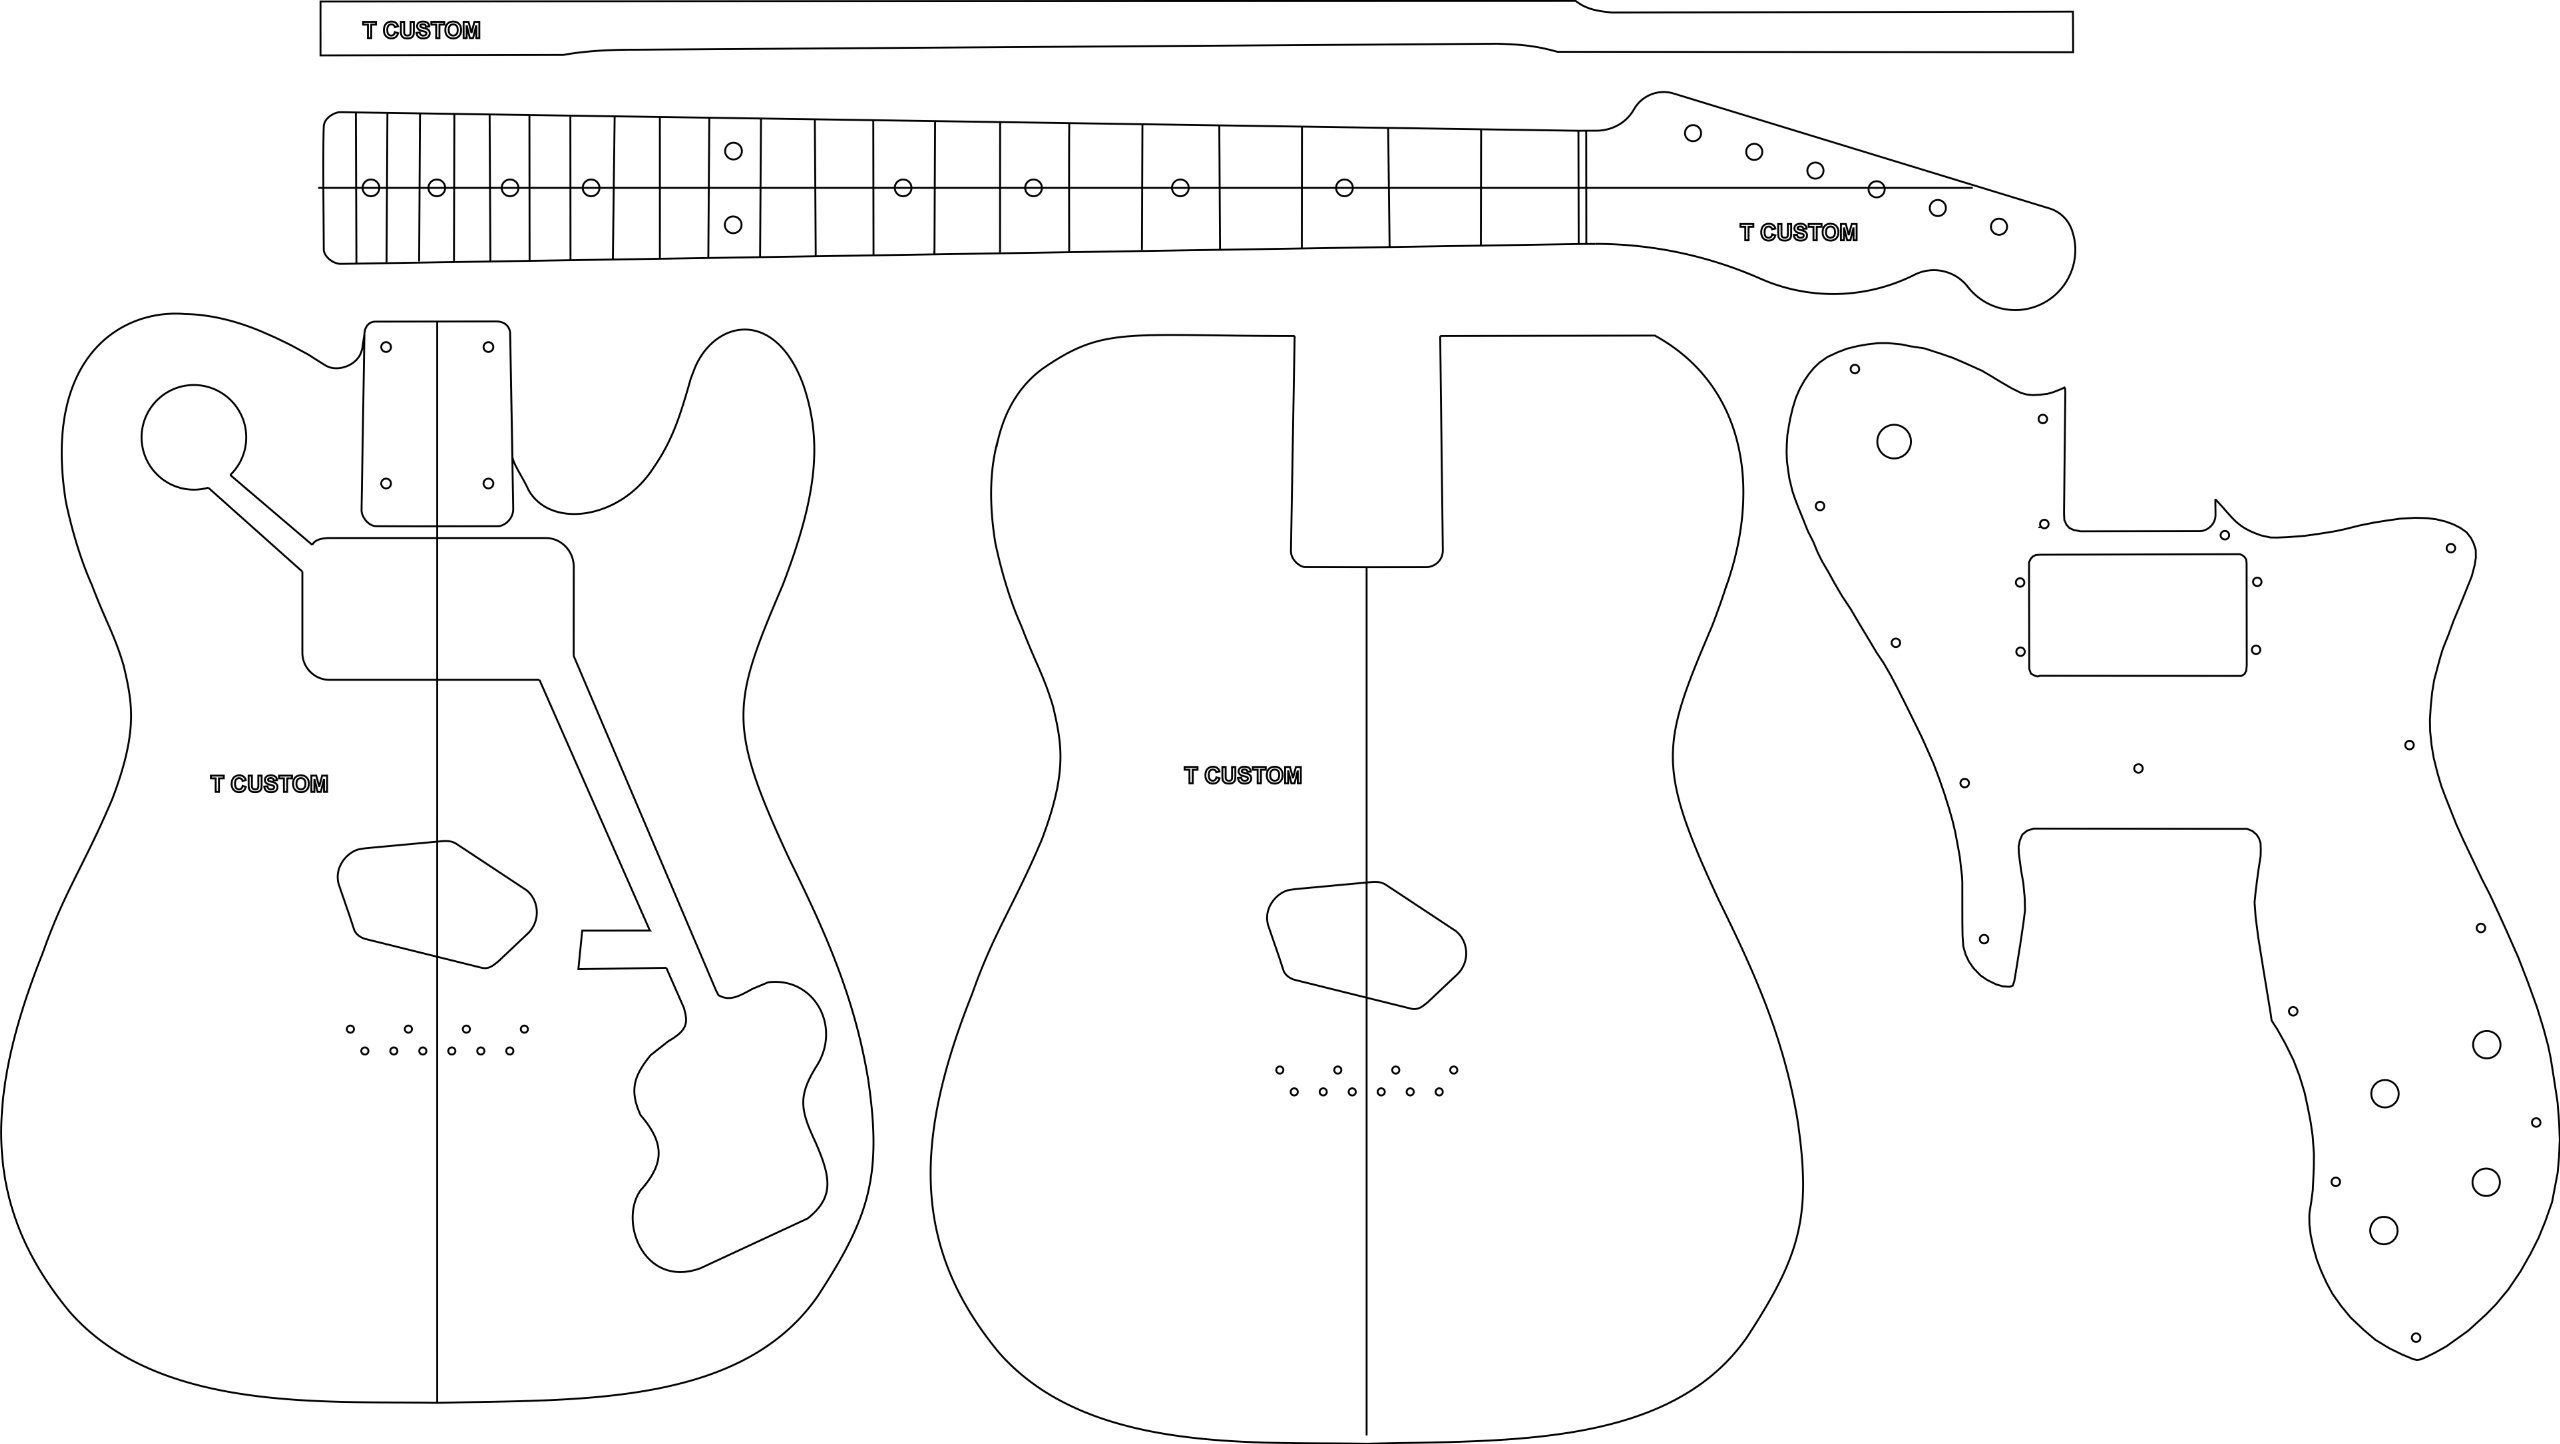 Electric Guitar Routing Template - T Custom by GPC (Image #1)